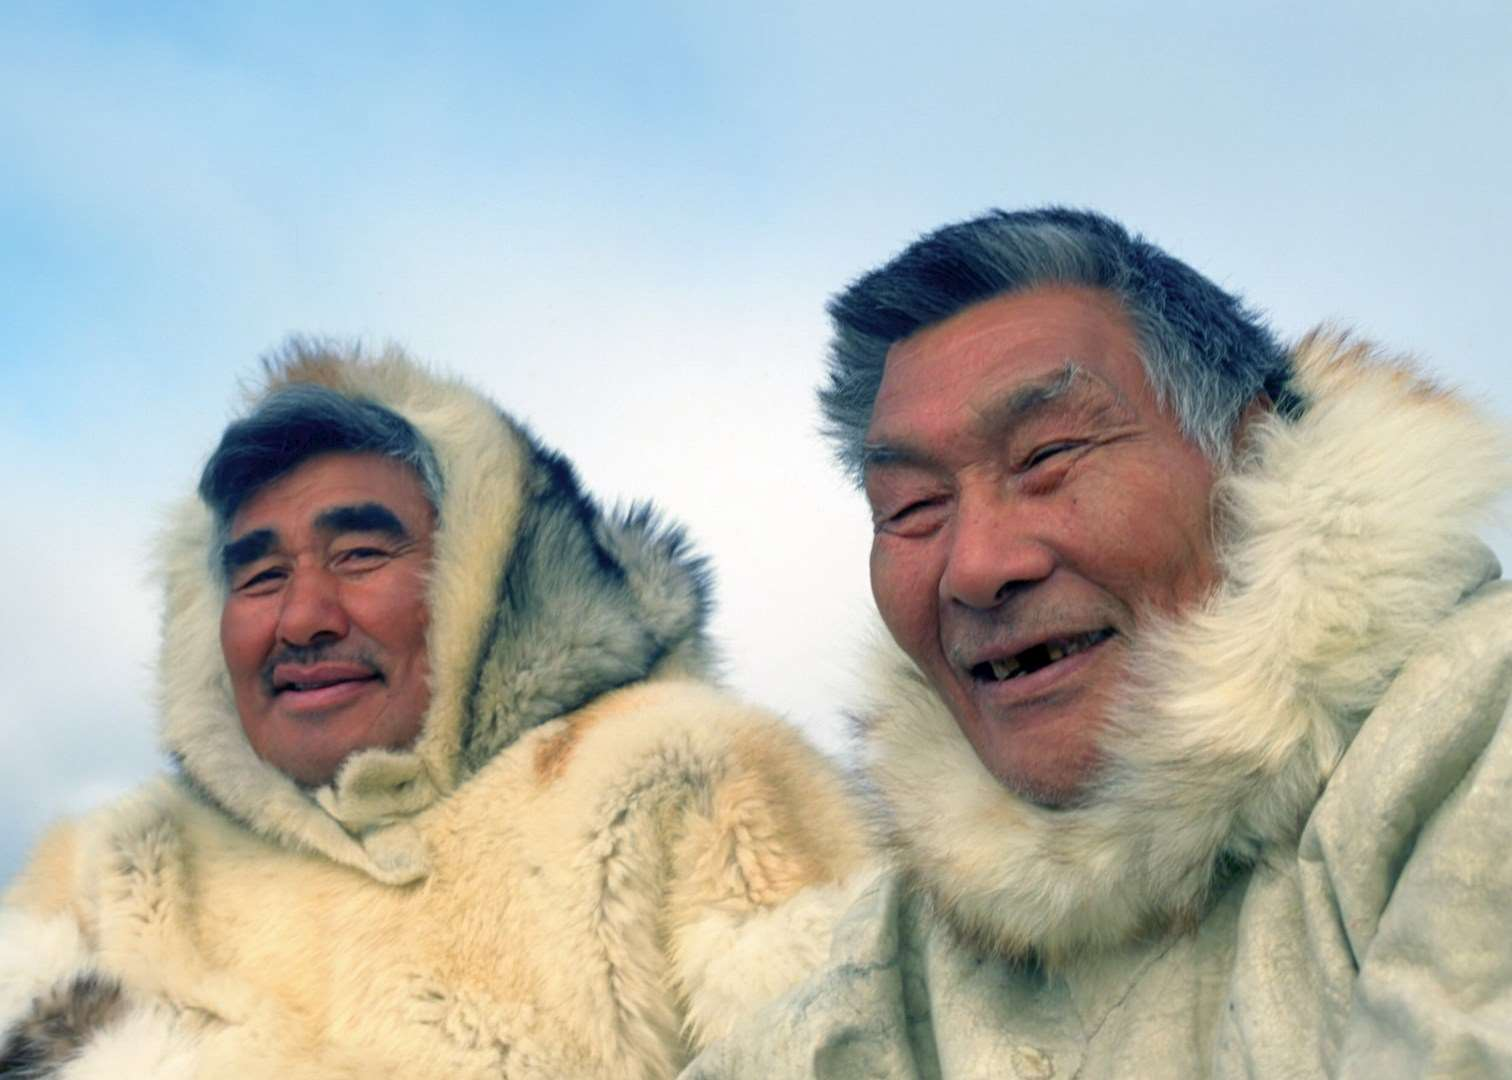 essay inuit people The inuit people essay 1383 words | 6 pages the inuit people the word eskimo is not a proper eskimo word it means eaters of raw meat and was used by the algonquin indians of eastern canada for their neighbours who wore animal-skin clothing and were ruthless hunters.